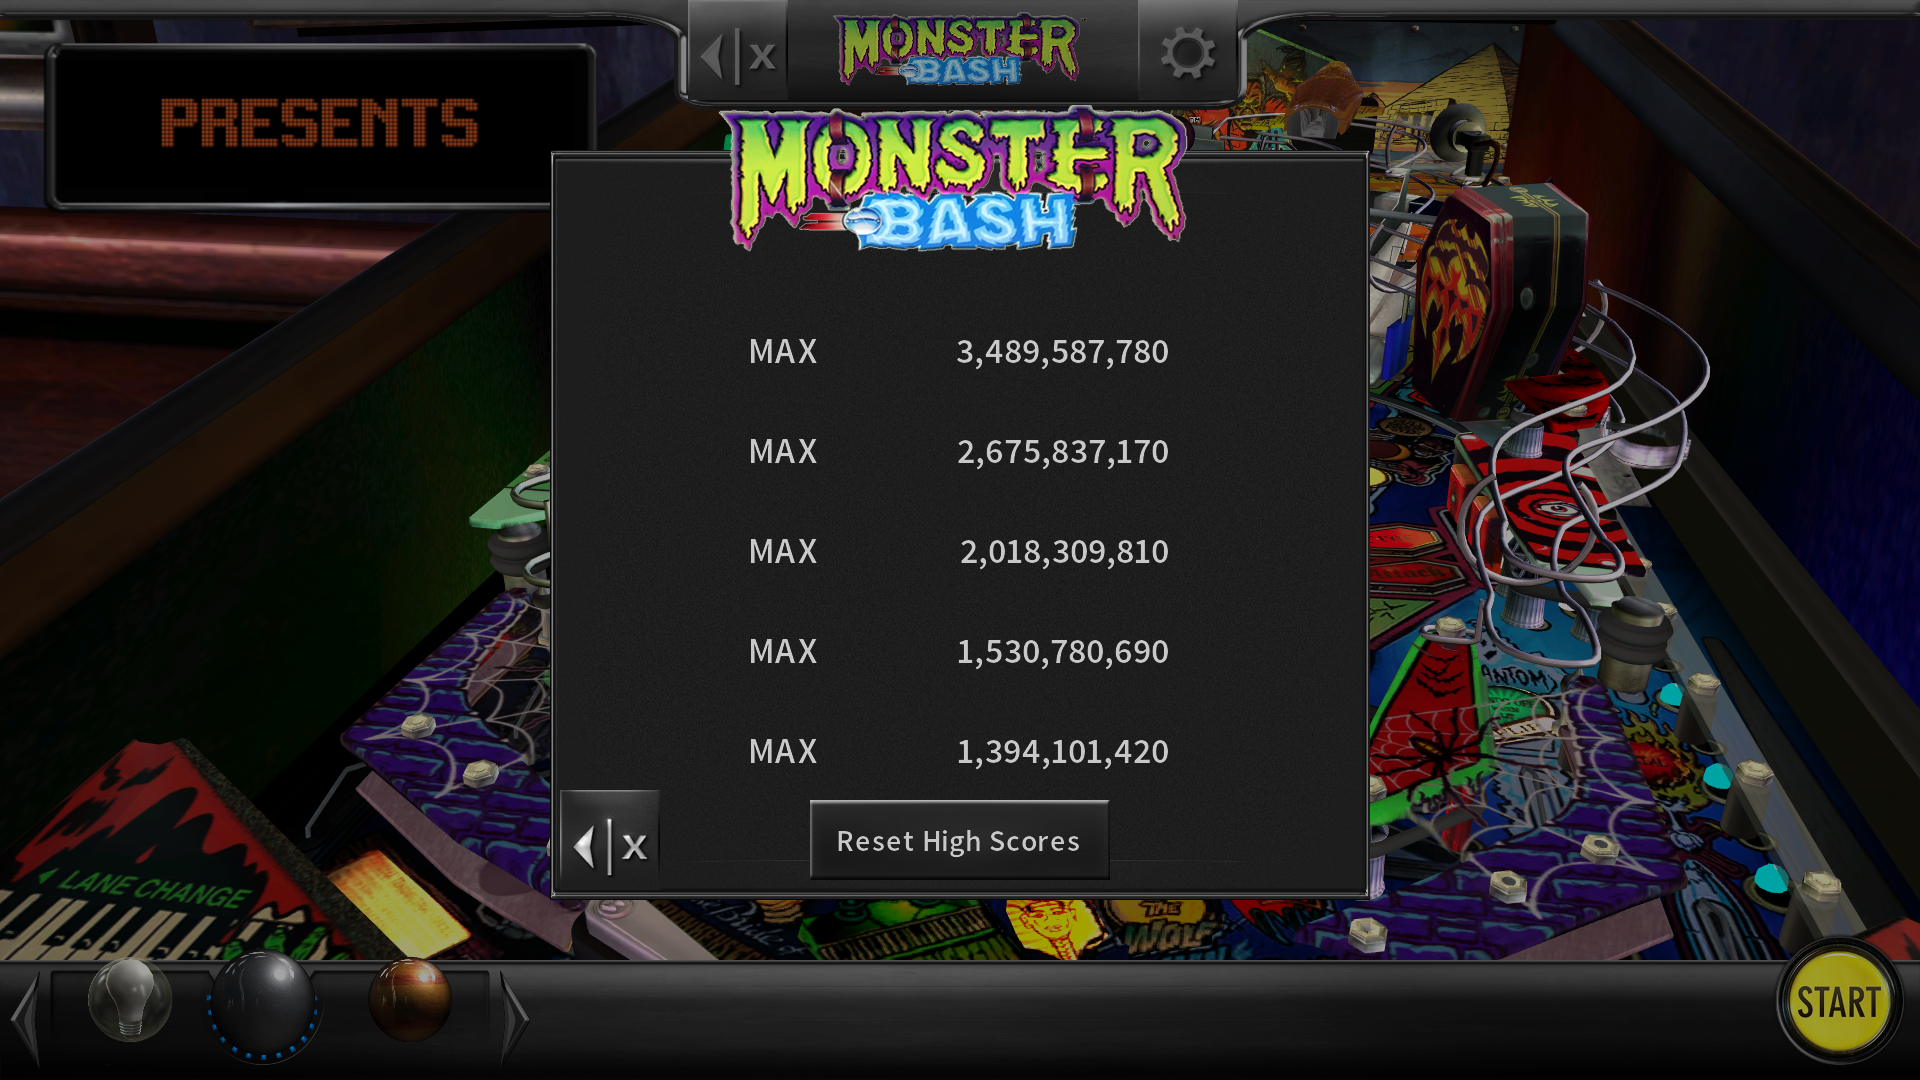 maxgreat: Pinball Arcade: Monster Bash (PC) 3,489,587,780 points on 2018-03-01 04:29:25